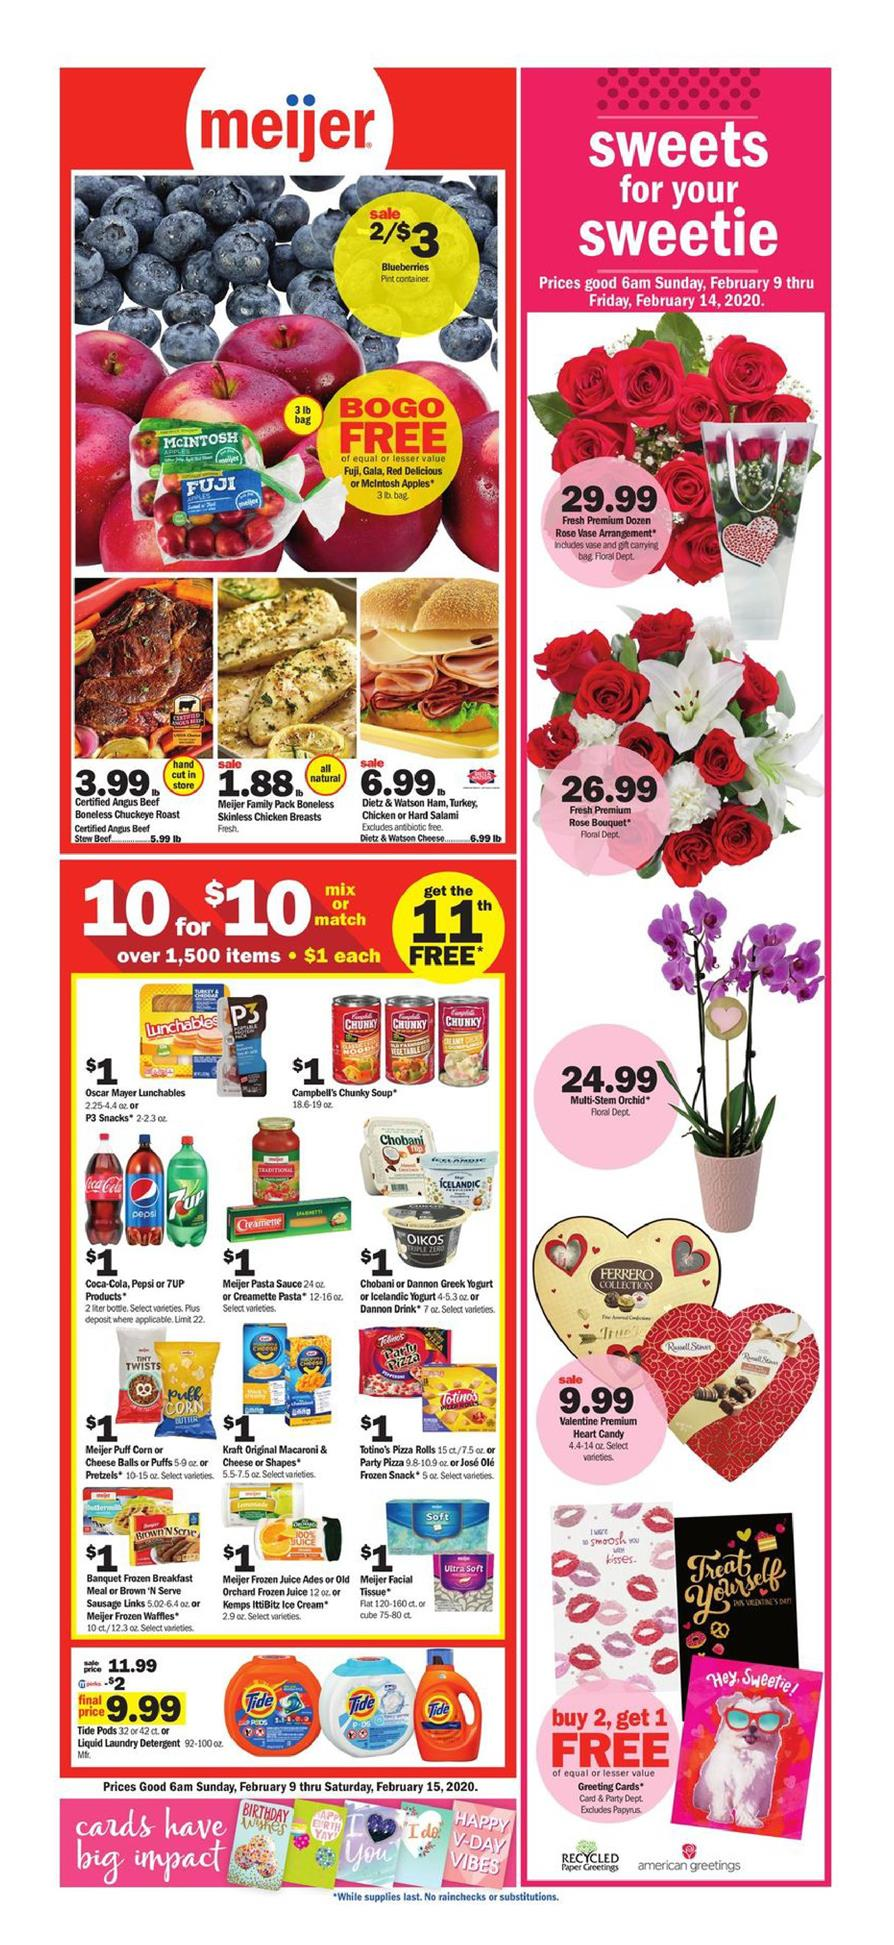 Meijer Valentine's Day Weekly Ad valid from Feb 9 – 15, 2020.